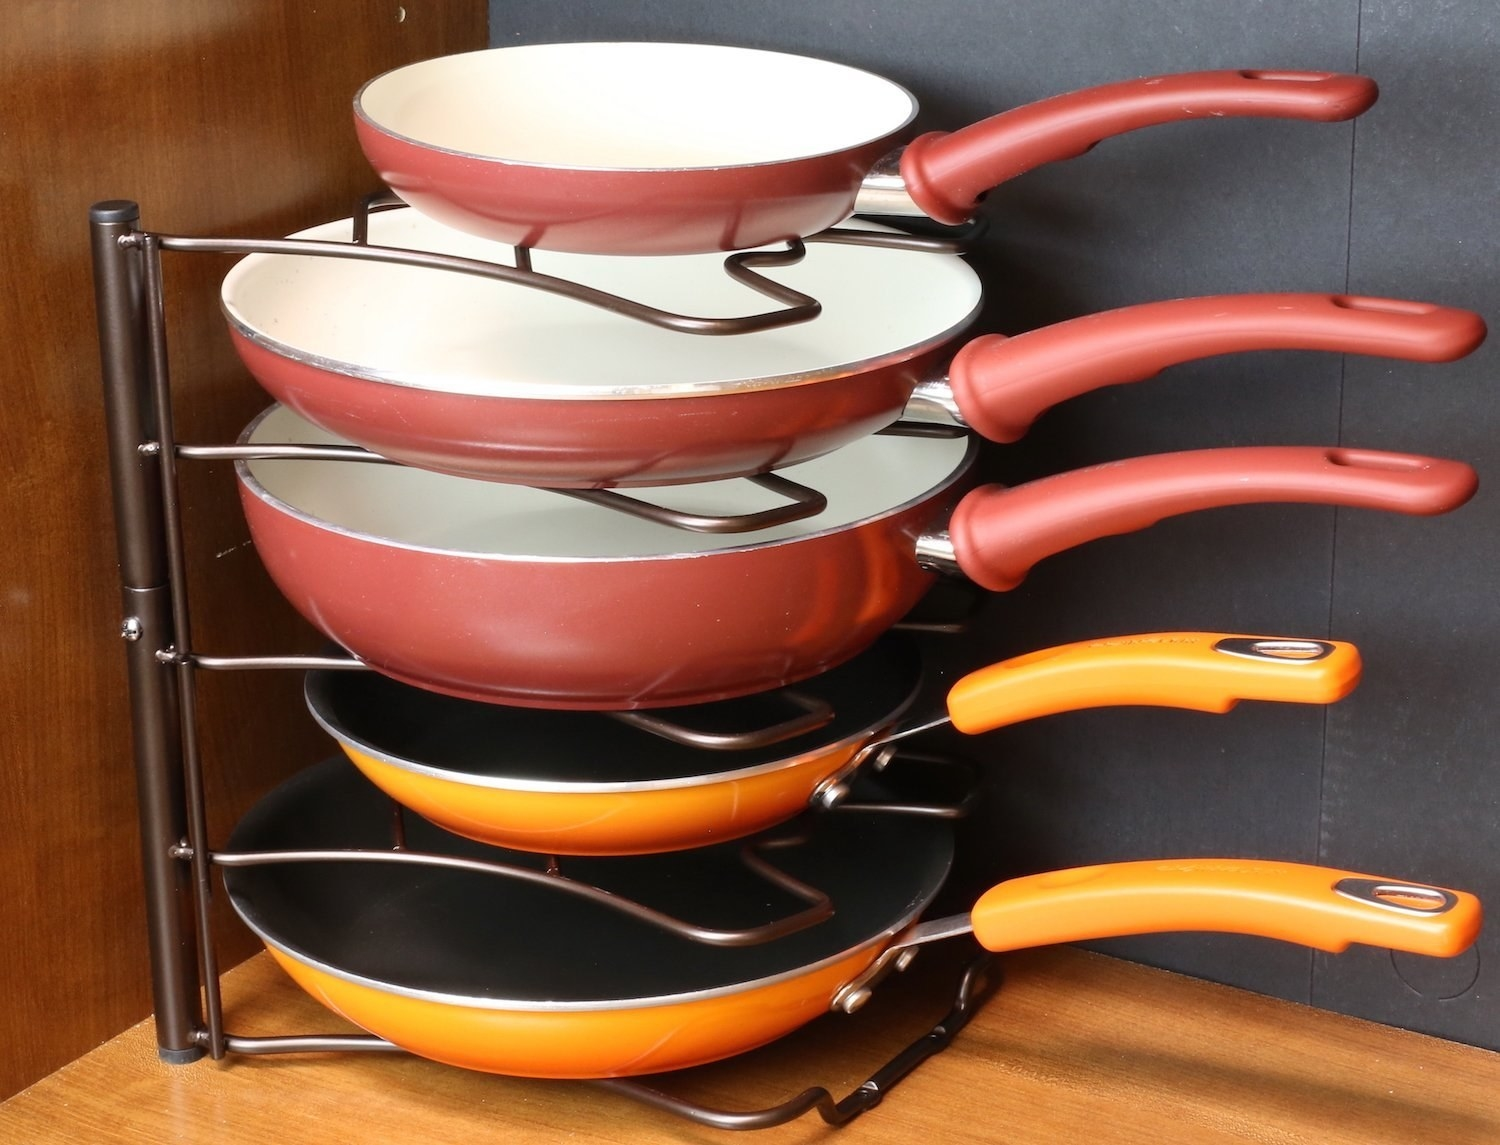 """Can be used vertically or horizontally.Promising review: """"This rack is perfect. I put my largest skillet on the bottom and smallest at the top. I did not secure the rack with the screws that came with it so I can easily move it if I rearrange my pots and pans area. Even without securing it to the cabinet, it works perfectly and doesn't shift when I remove a pan. I also appreciate the color: Others I have seen are shiny silver, which I did not want. I will be buying another one of these for our cabin. I have already recommended this rack to friends."""" —CustomerOGet it from Amazon for $16.87."""